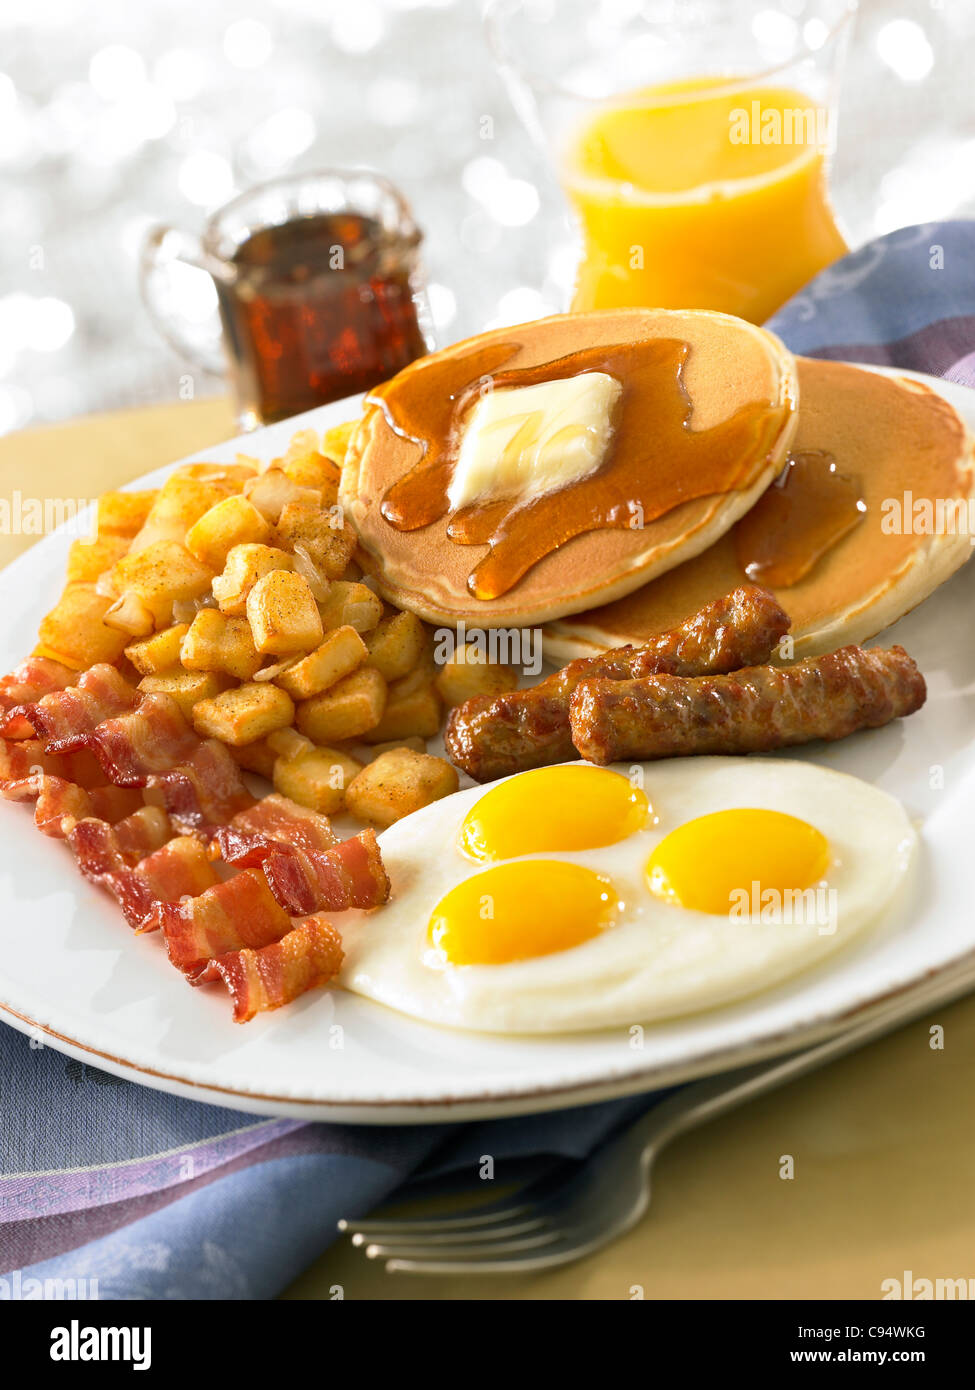 pancake and bacon breakfast - photo #32